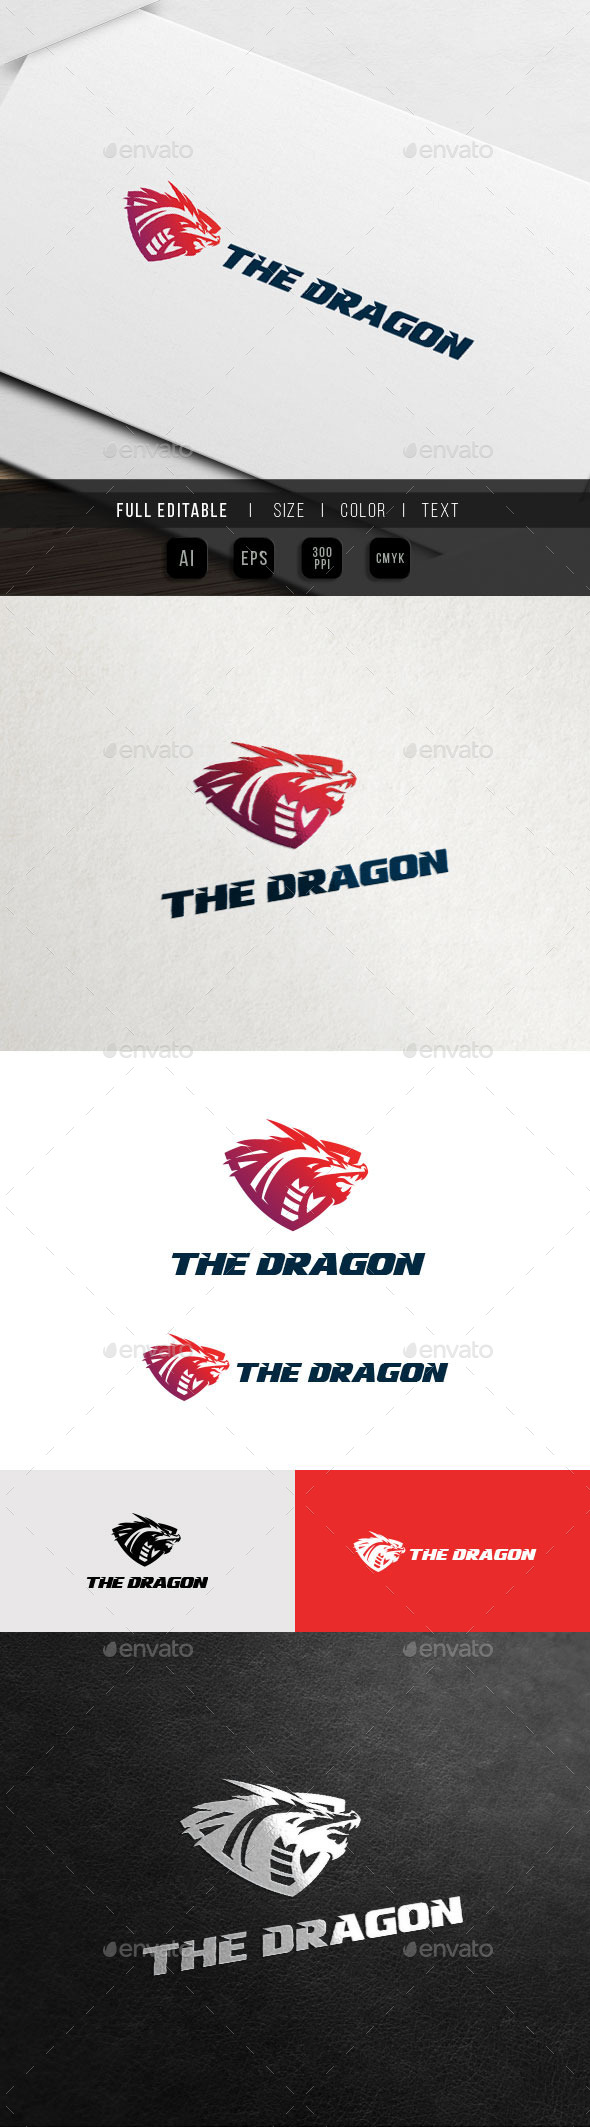 Dragon Shield - Game Team Logo